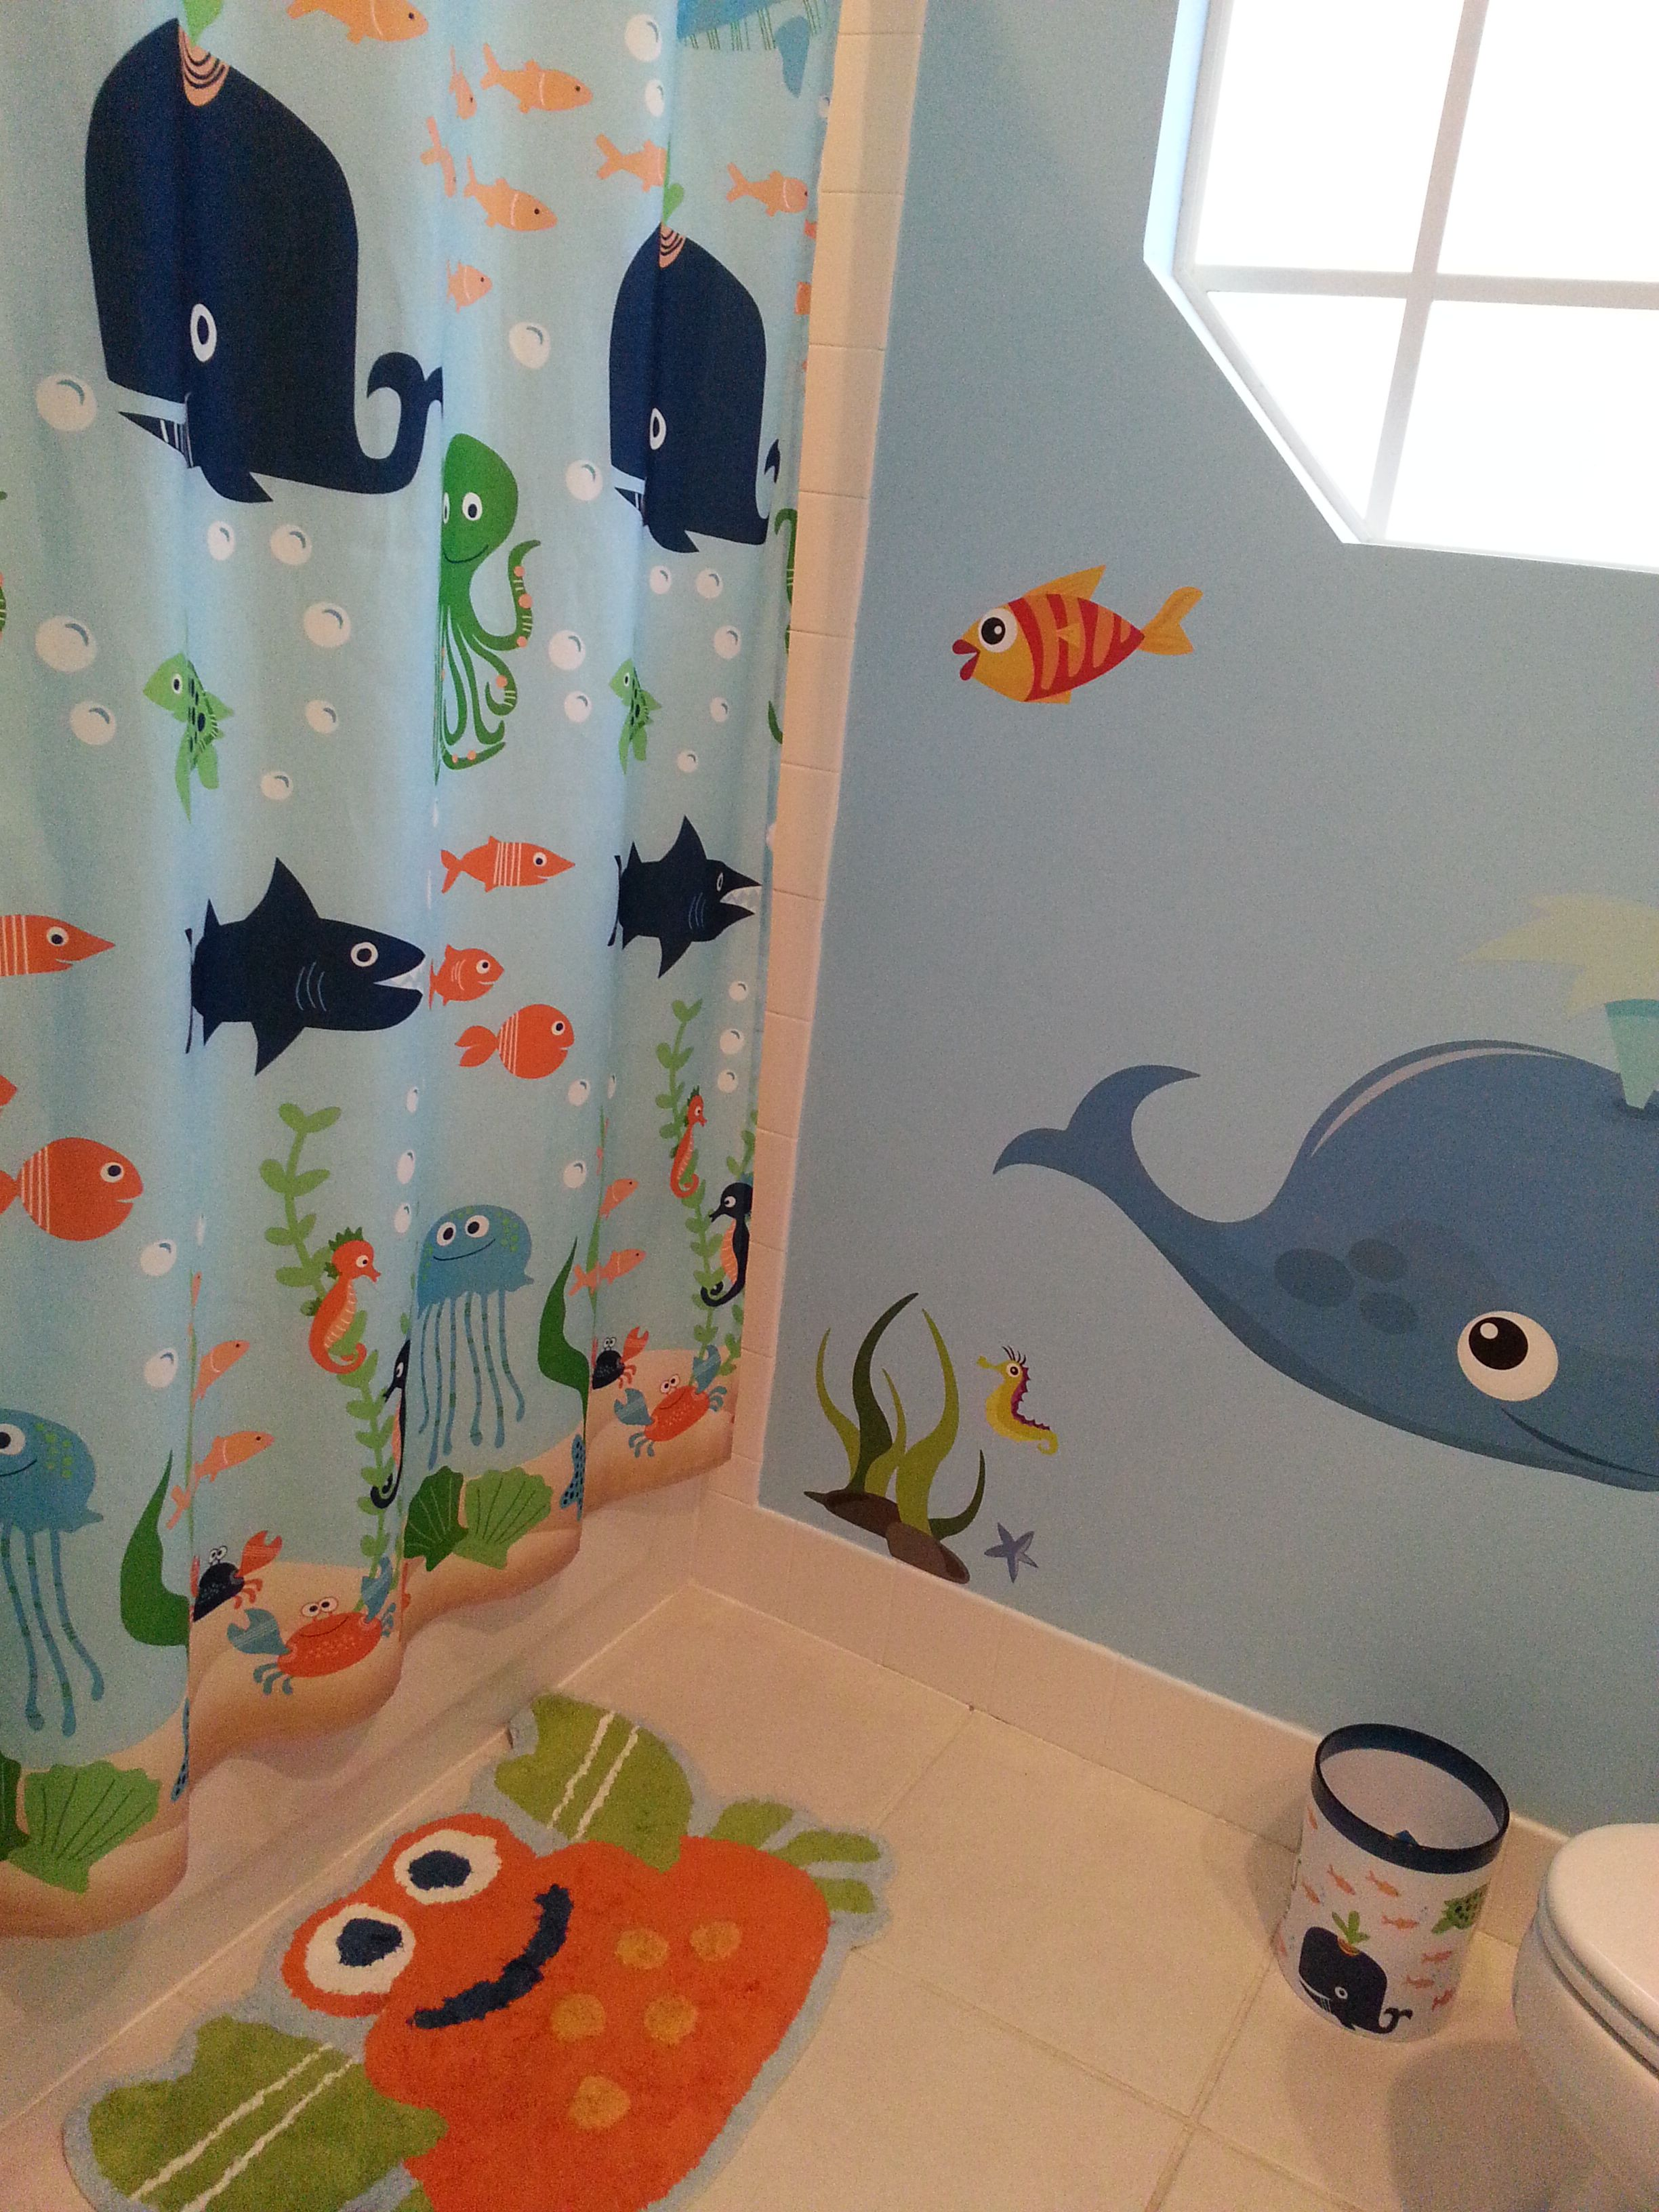 'Under the Sea' bathroom | Kids bathroom themes, Bathroom ...